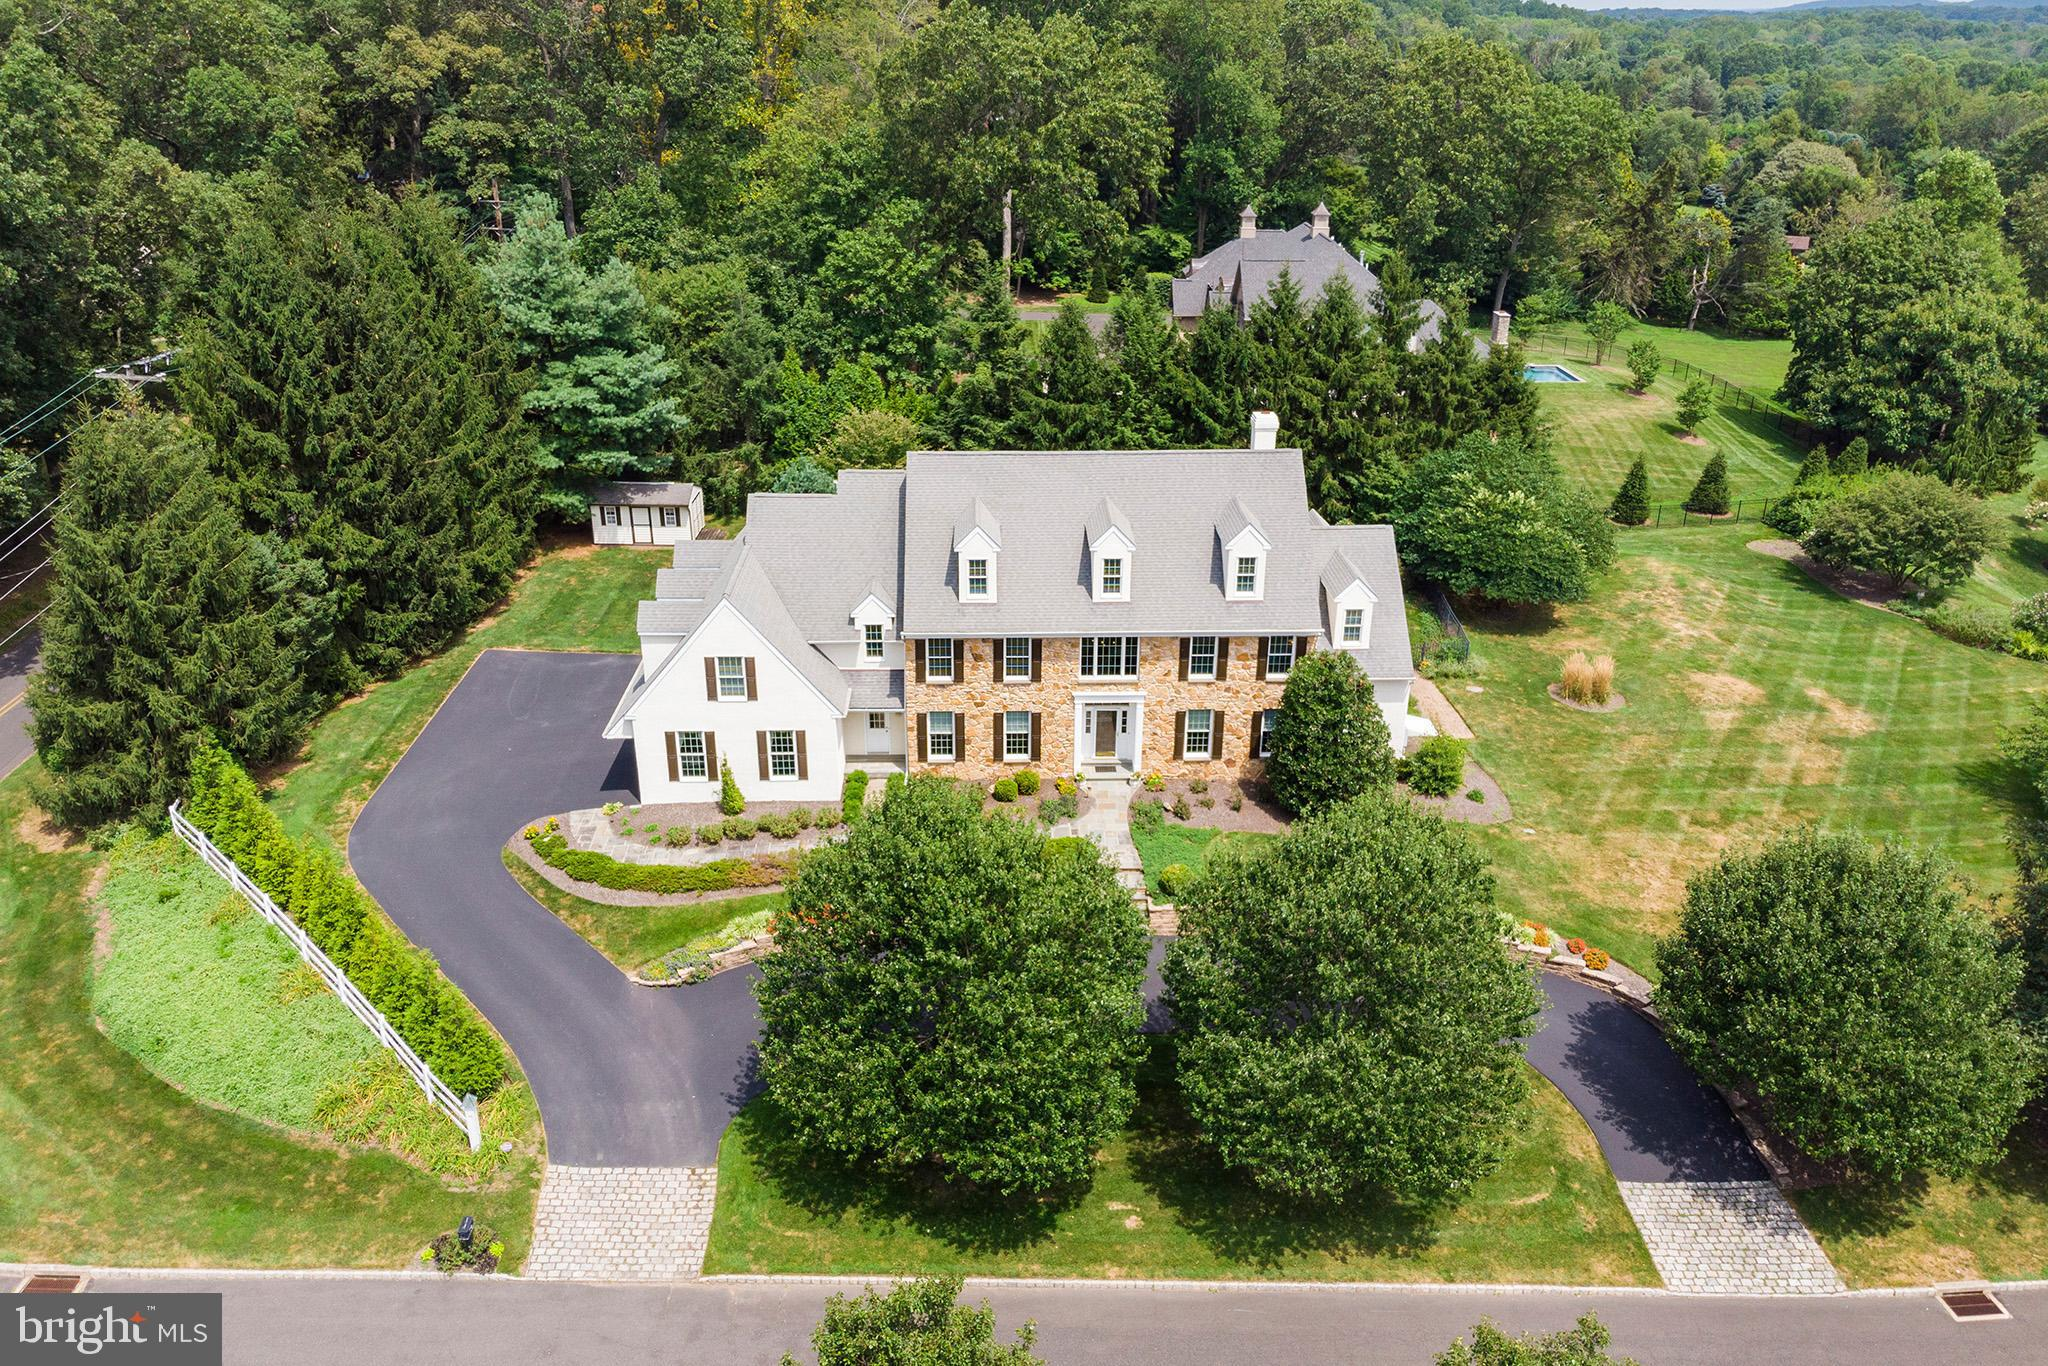 1 MERCER GATE DRIVE, DOYLESTOWN, PA 18901